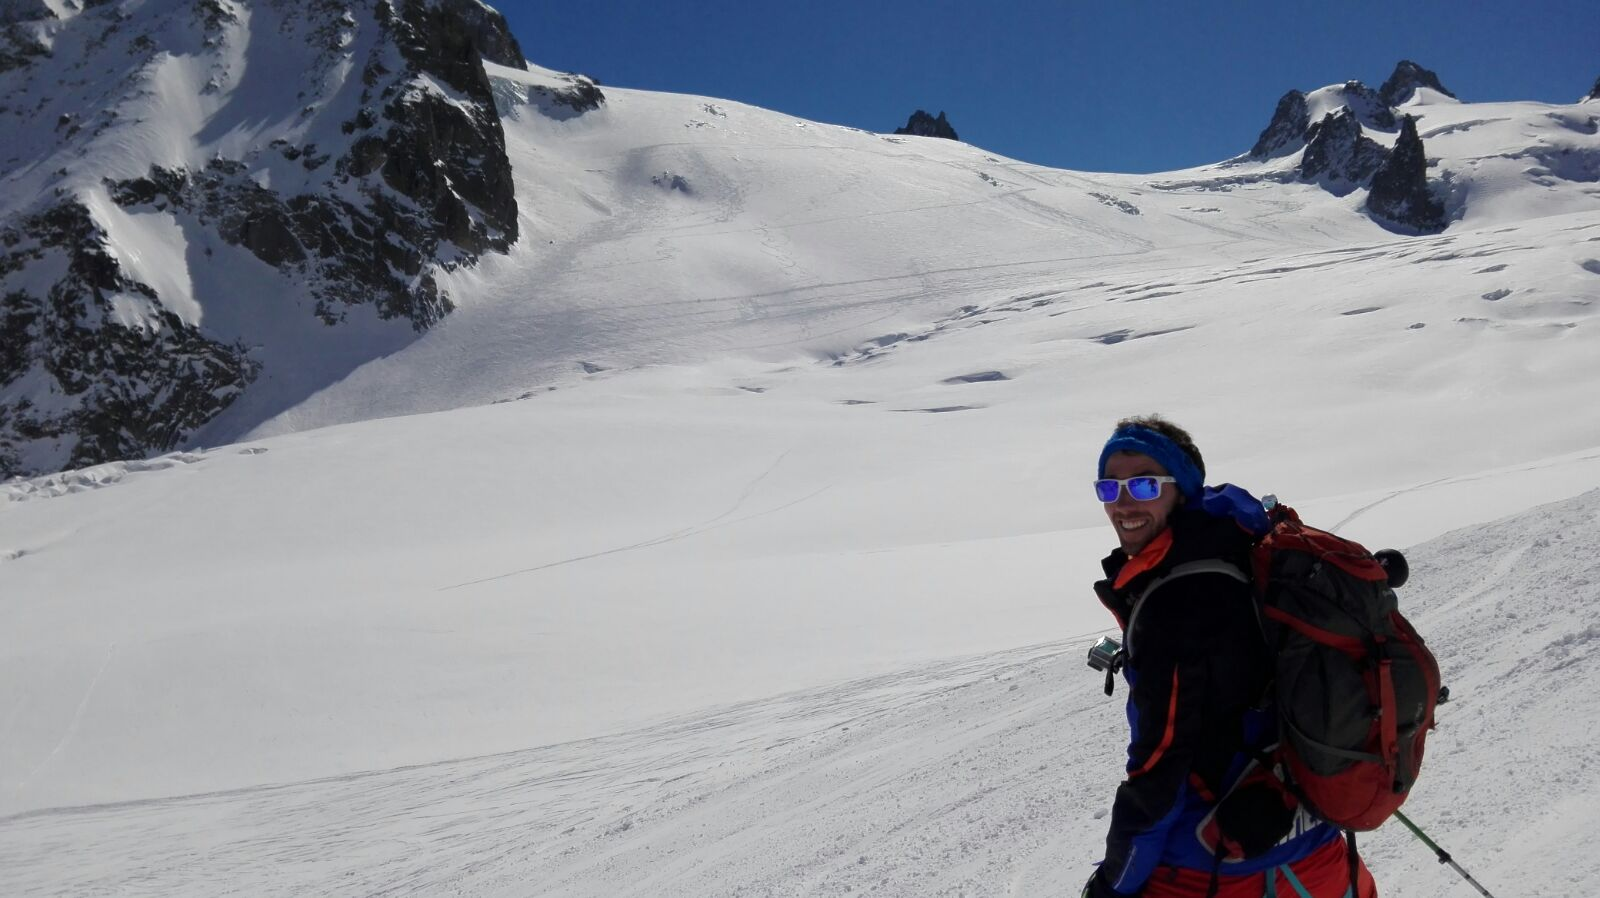 vallee blanche guide alpine proup (61)